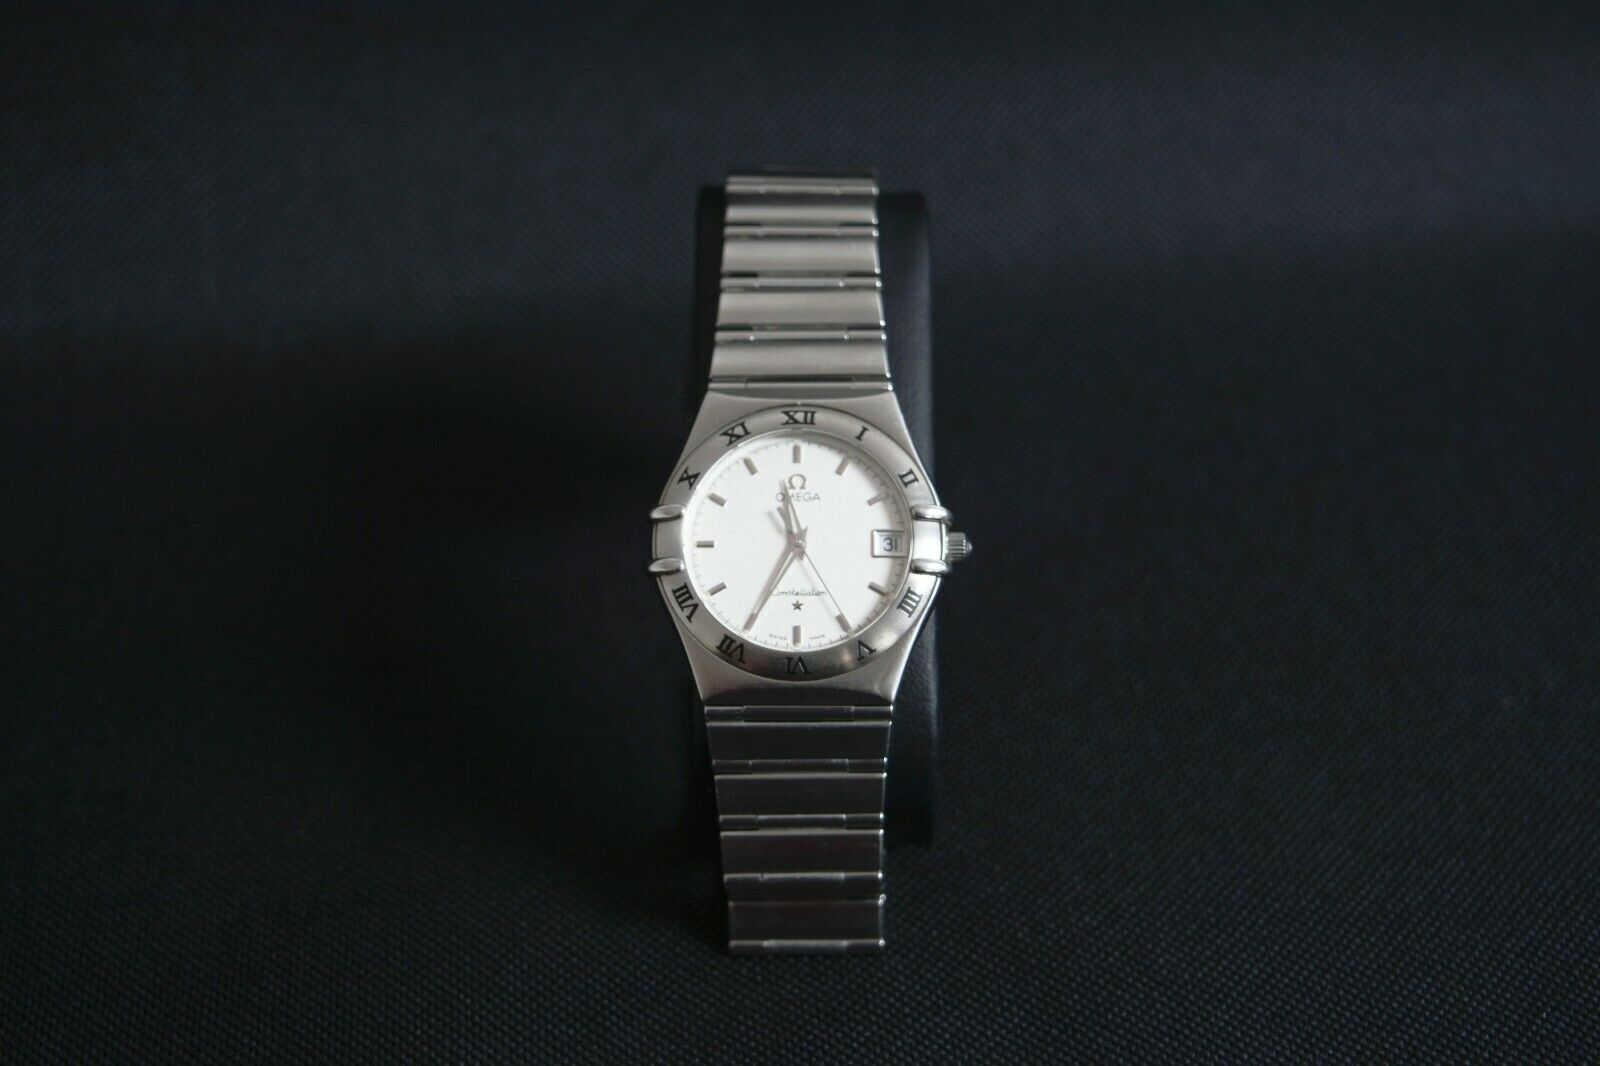 OMEGA Constellation Watch Men s Quartz White System Stainless Steel SS Used - $1,200.00